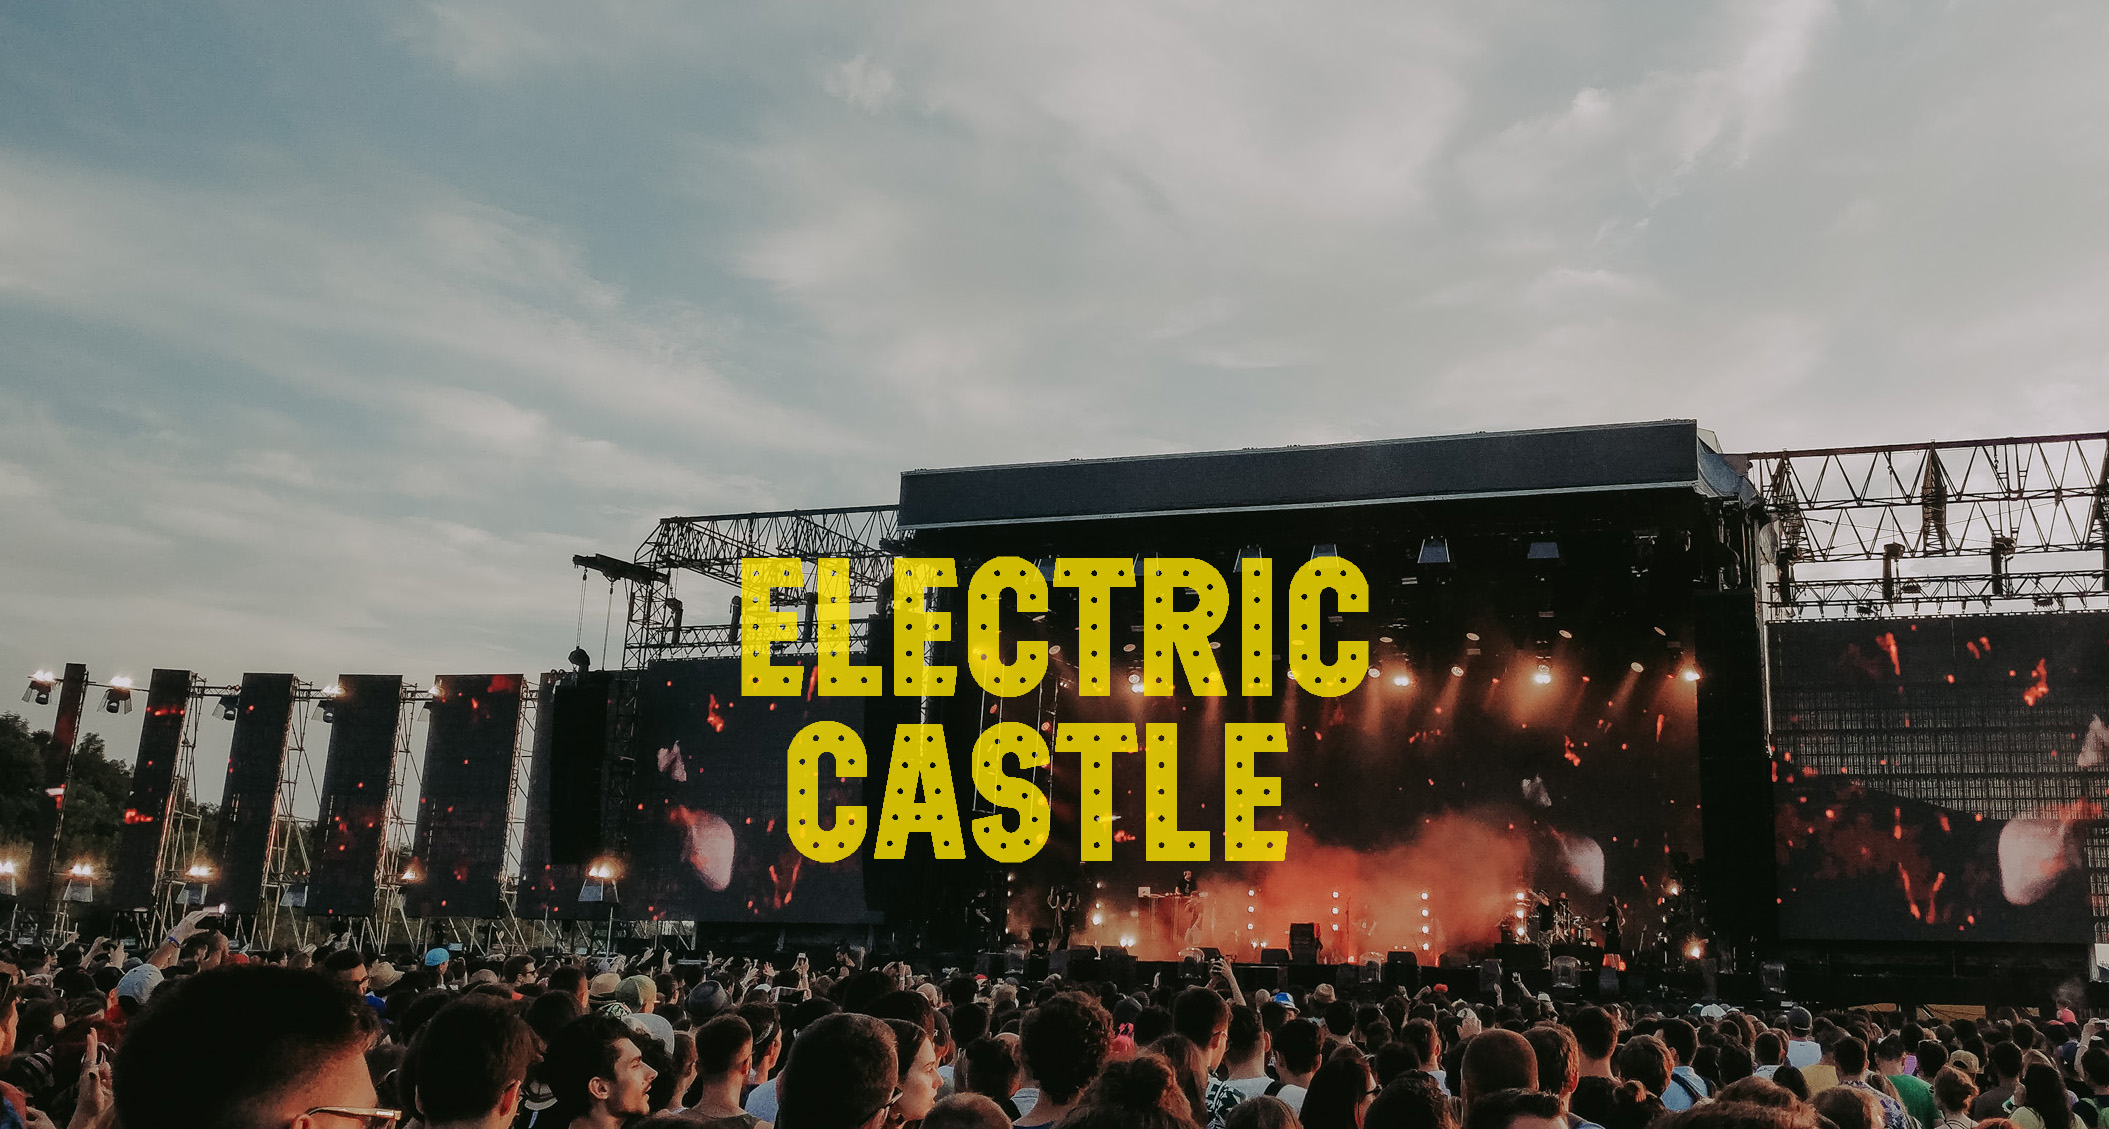 Electric Castle 2018 | Banffy Castle Bontida | youngcreative.info media